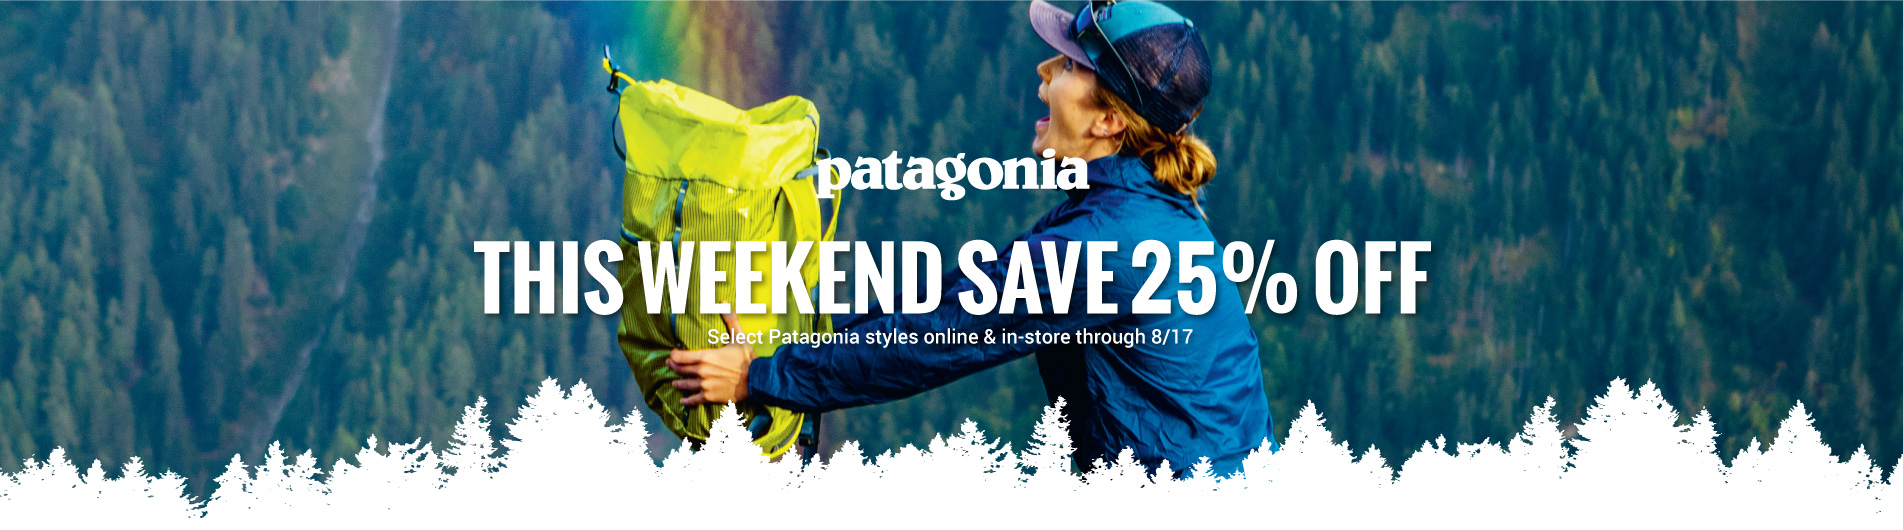 Save up to 30% OFF prior season styles from Patagonia for a limited time